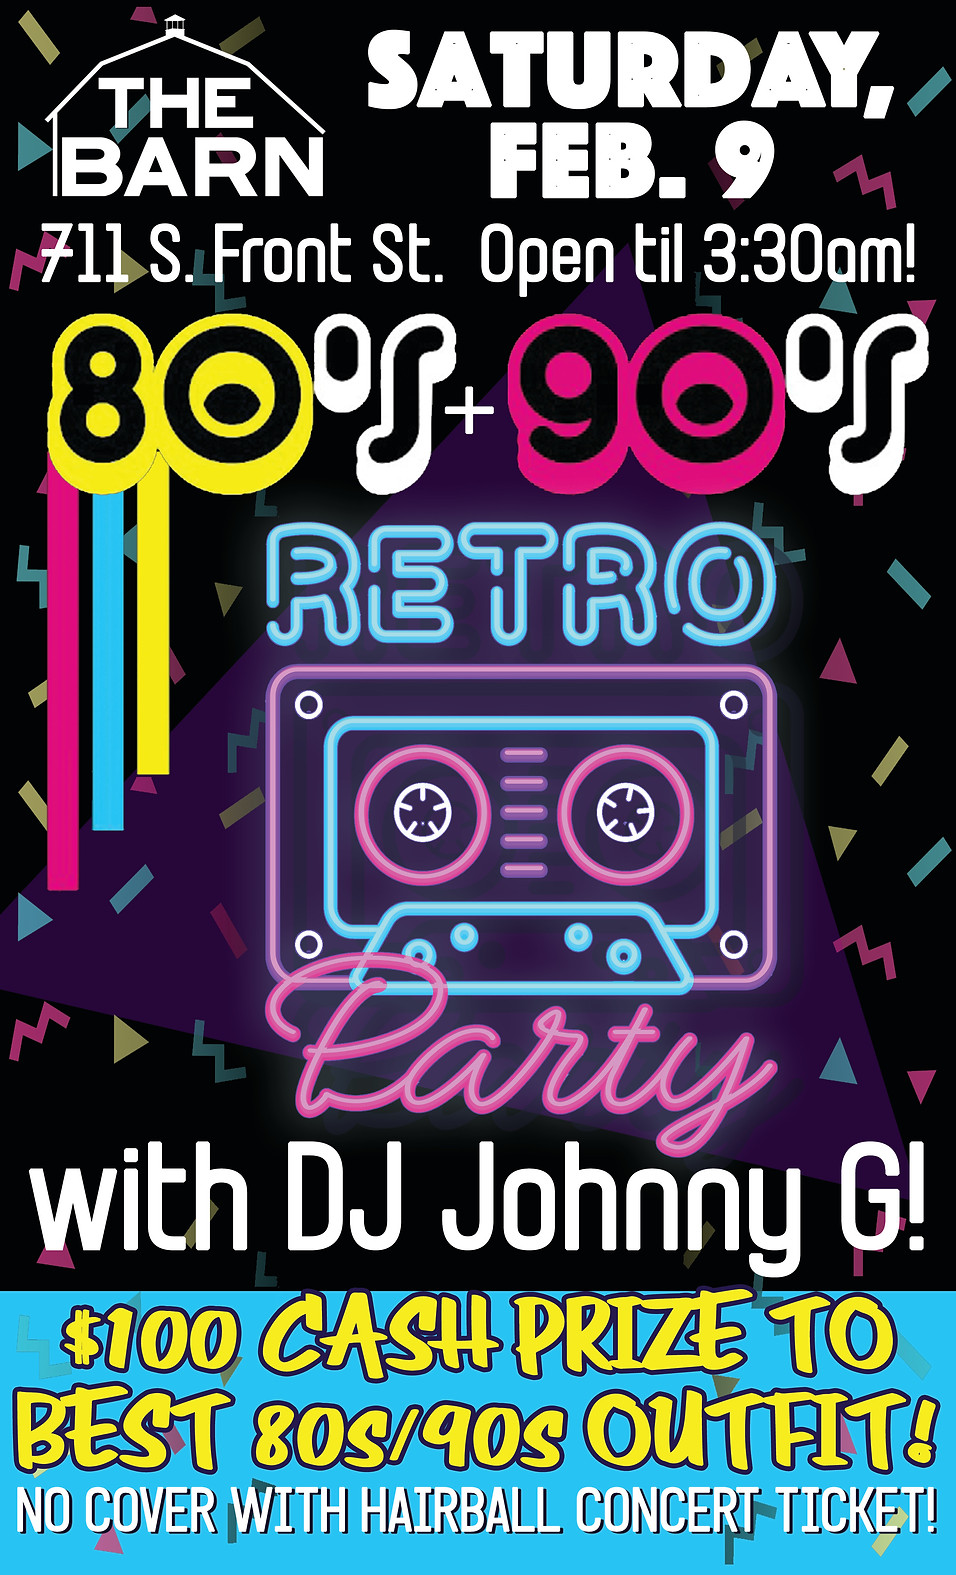 The Barn 80s 90s Night FLYER.jpg